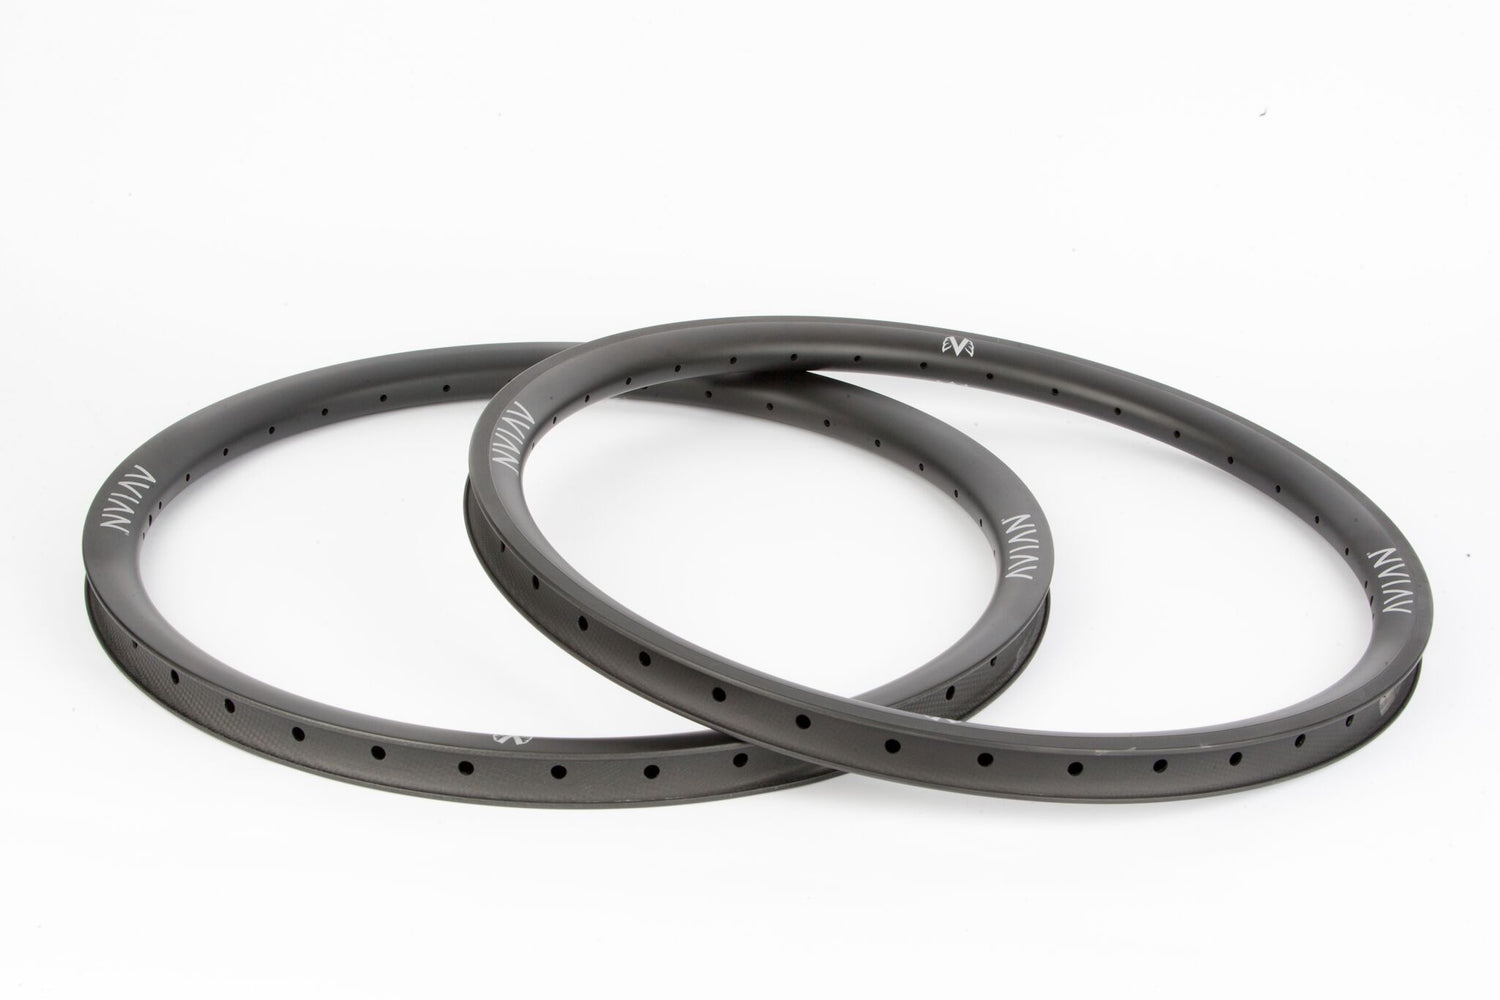 "Avian Venatic Carbon Rear Rim - 36H 24x1.75"" - Matte Black"